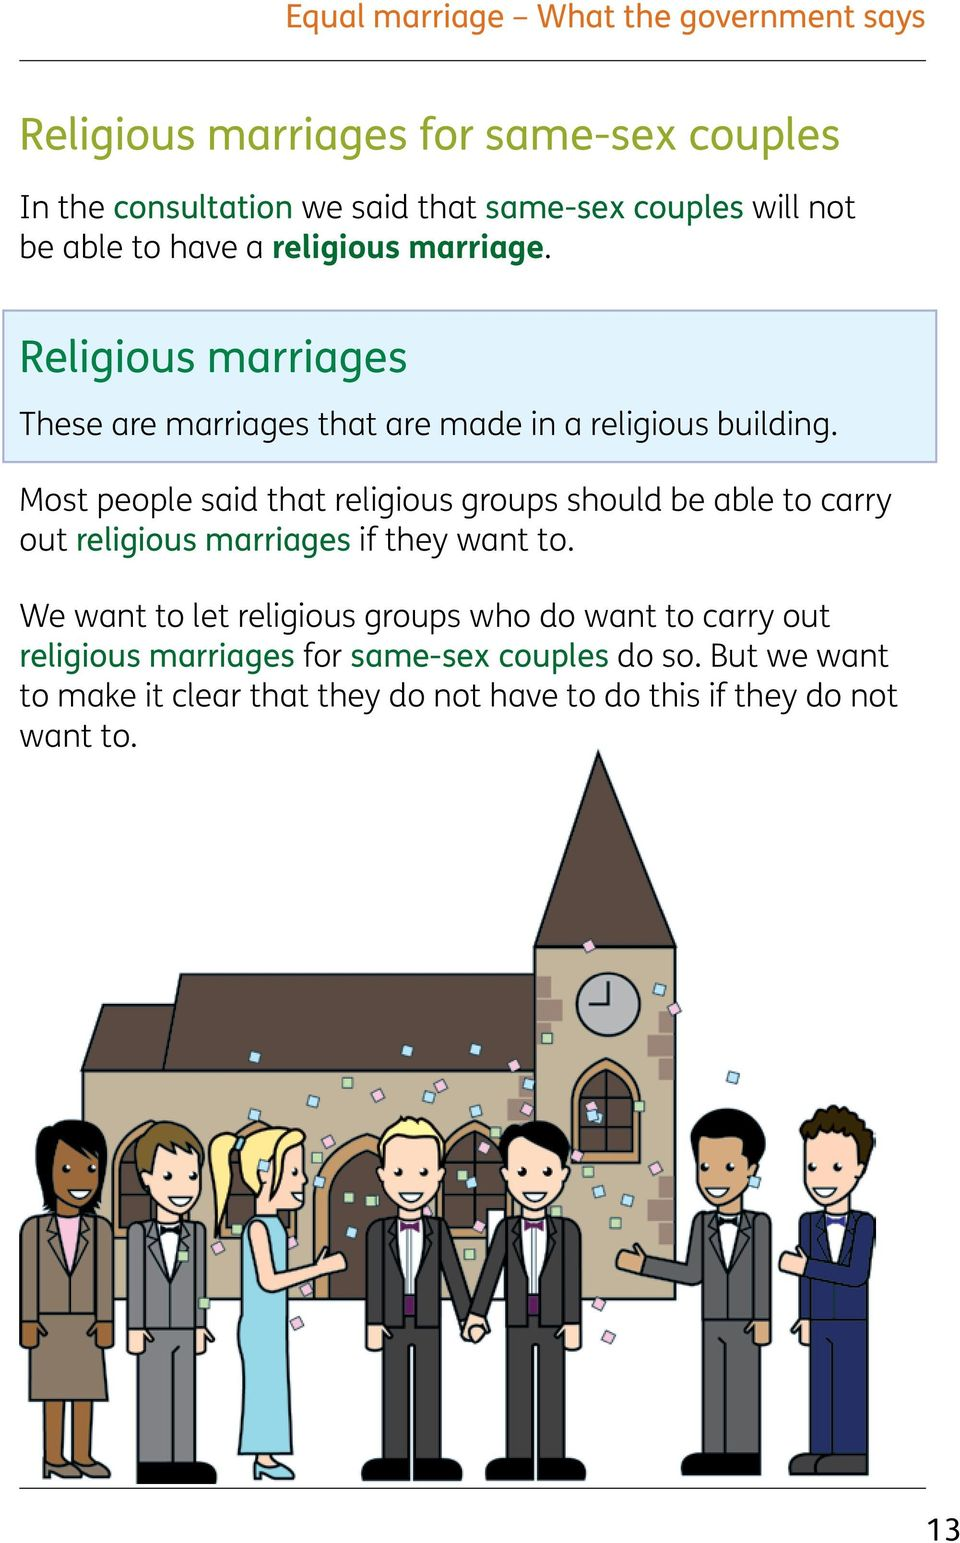 Most people said that religious groups should be able to carry out religious marriages if they want to.